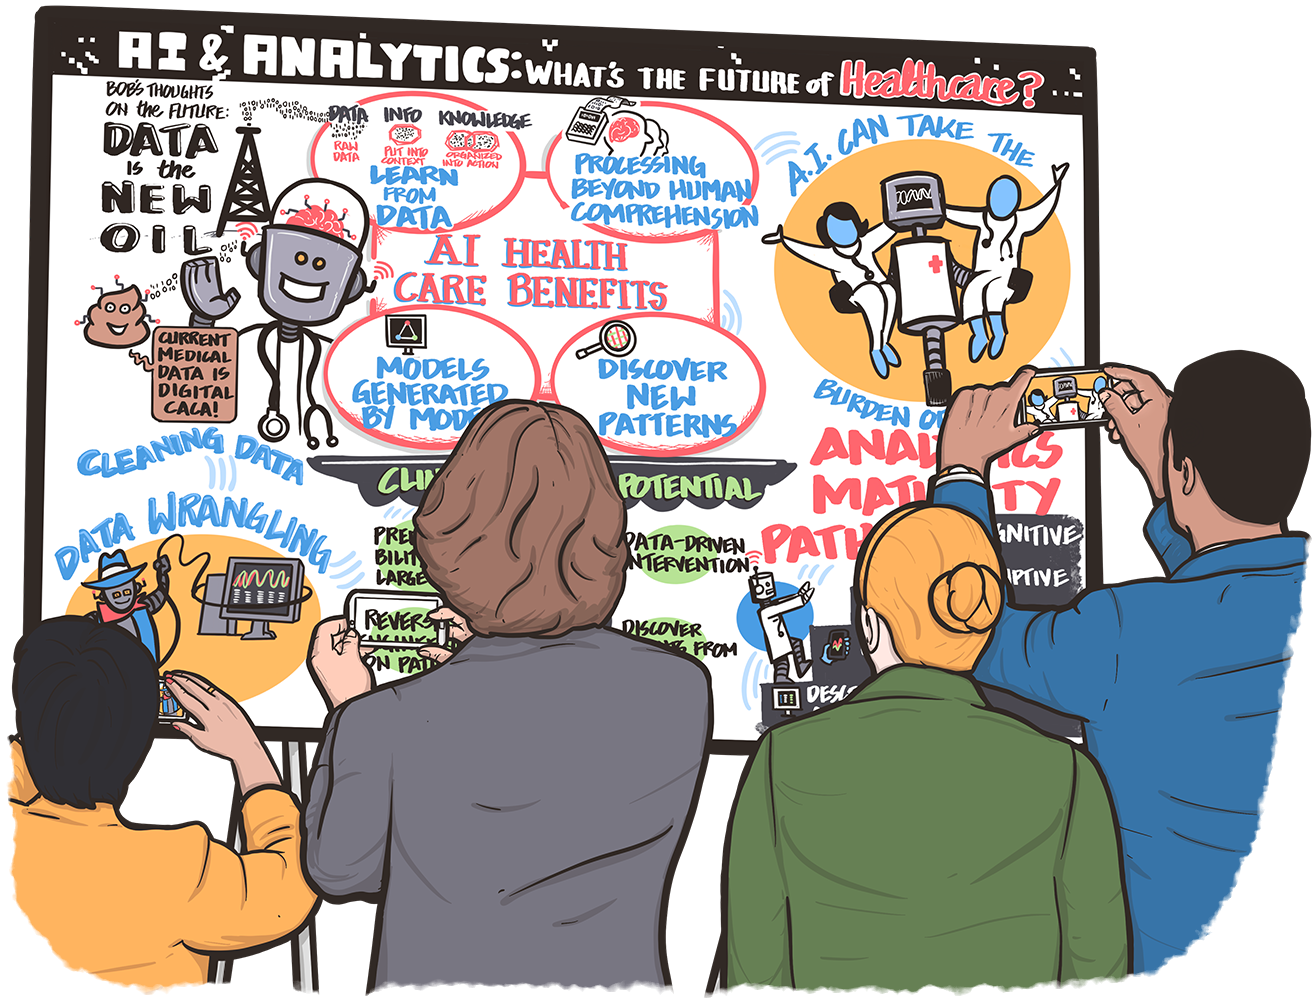 Graphic Recording and Facilitation offer Real-time visual storytelling that supplements collective ideation with visual artifacts